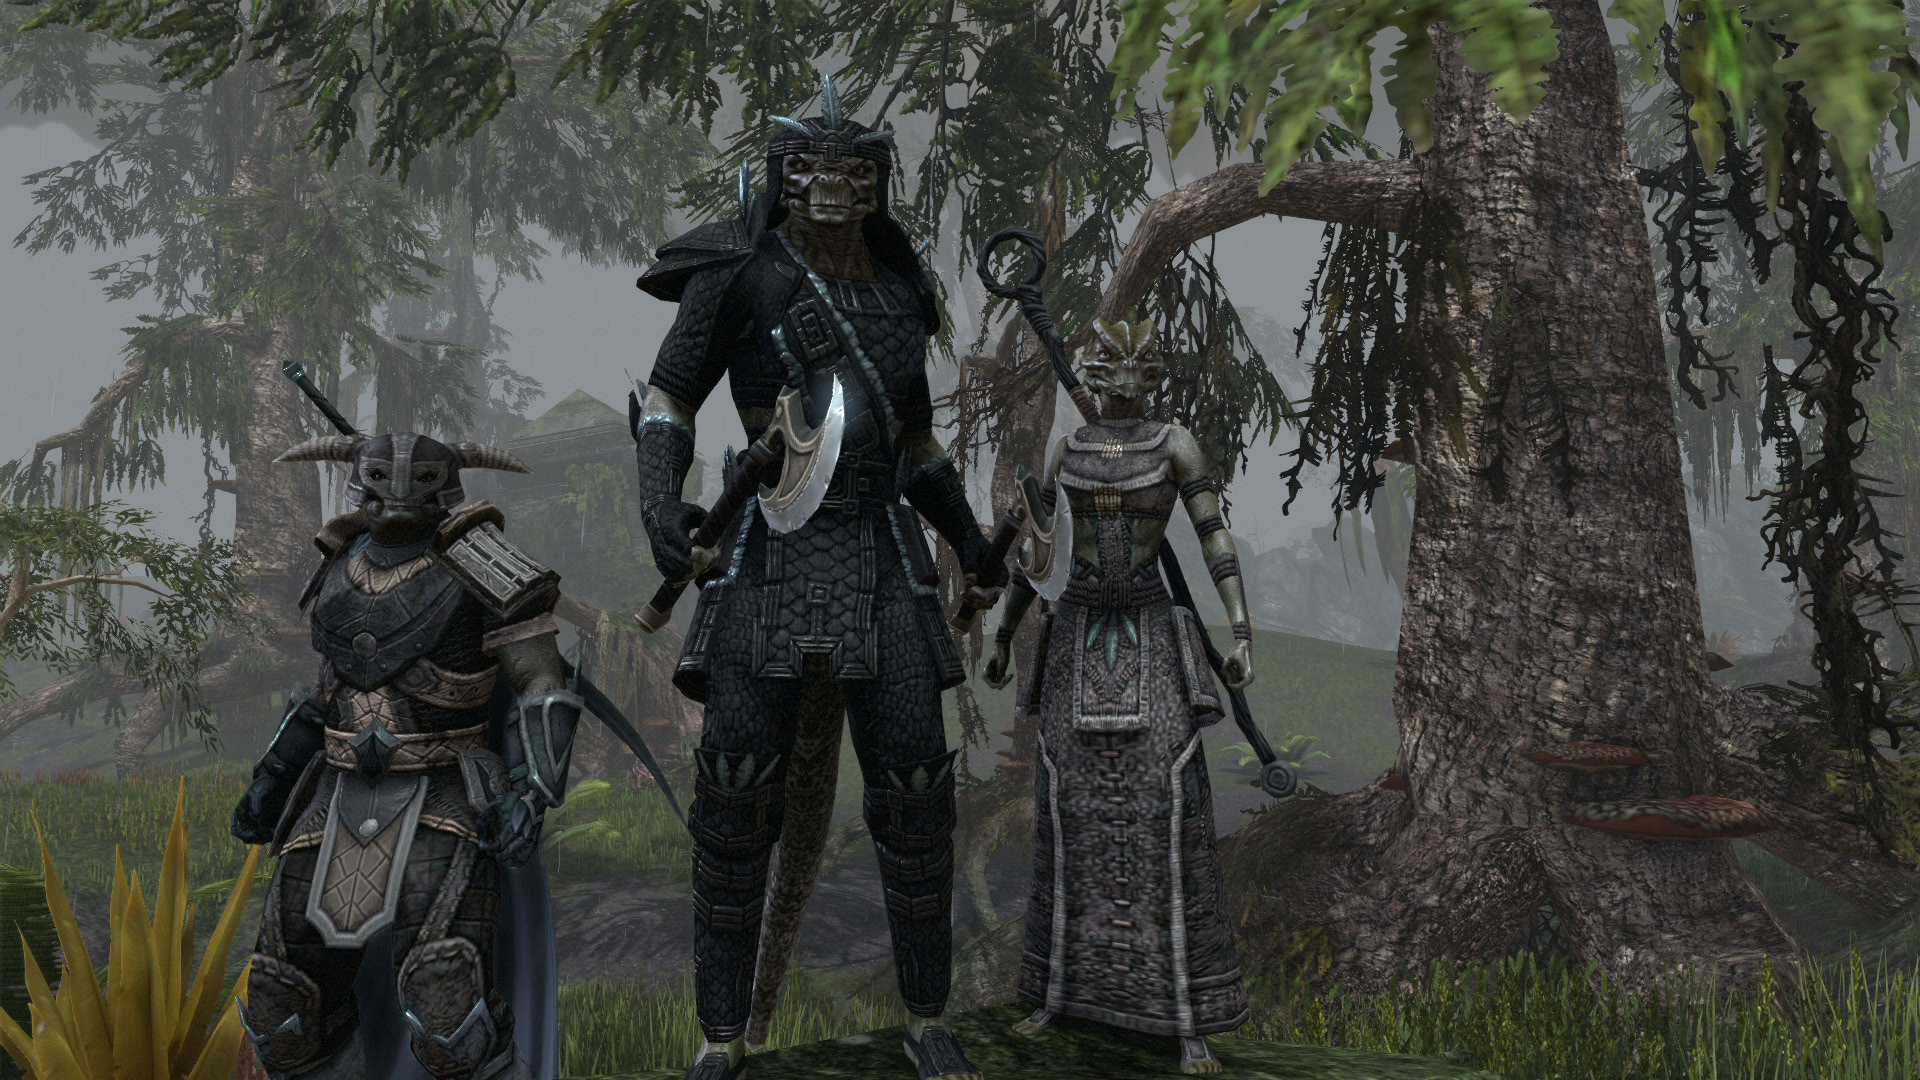 CapesWhy Cant ESo Handle Them Elder Scrolls Online